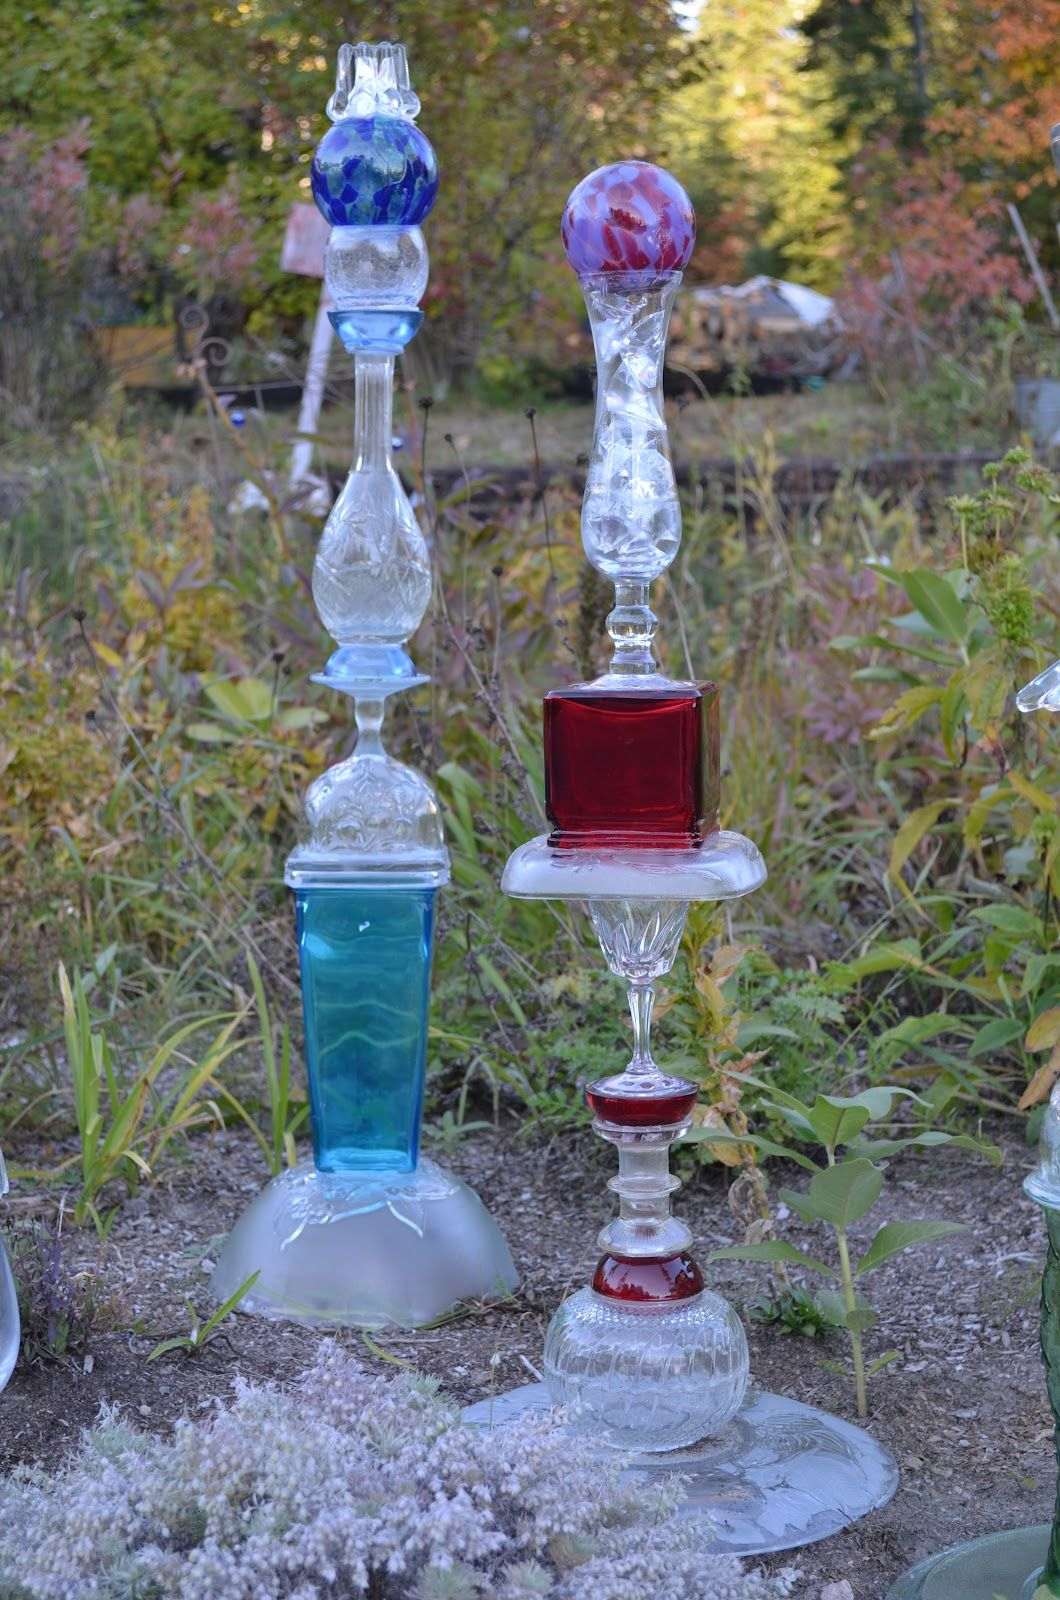 MacGIRLver: Garden Totems, Recycled Glass